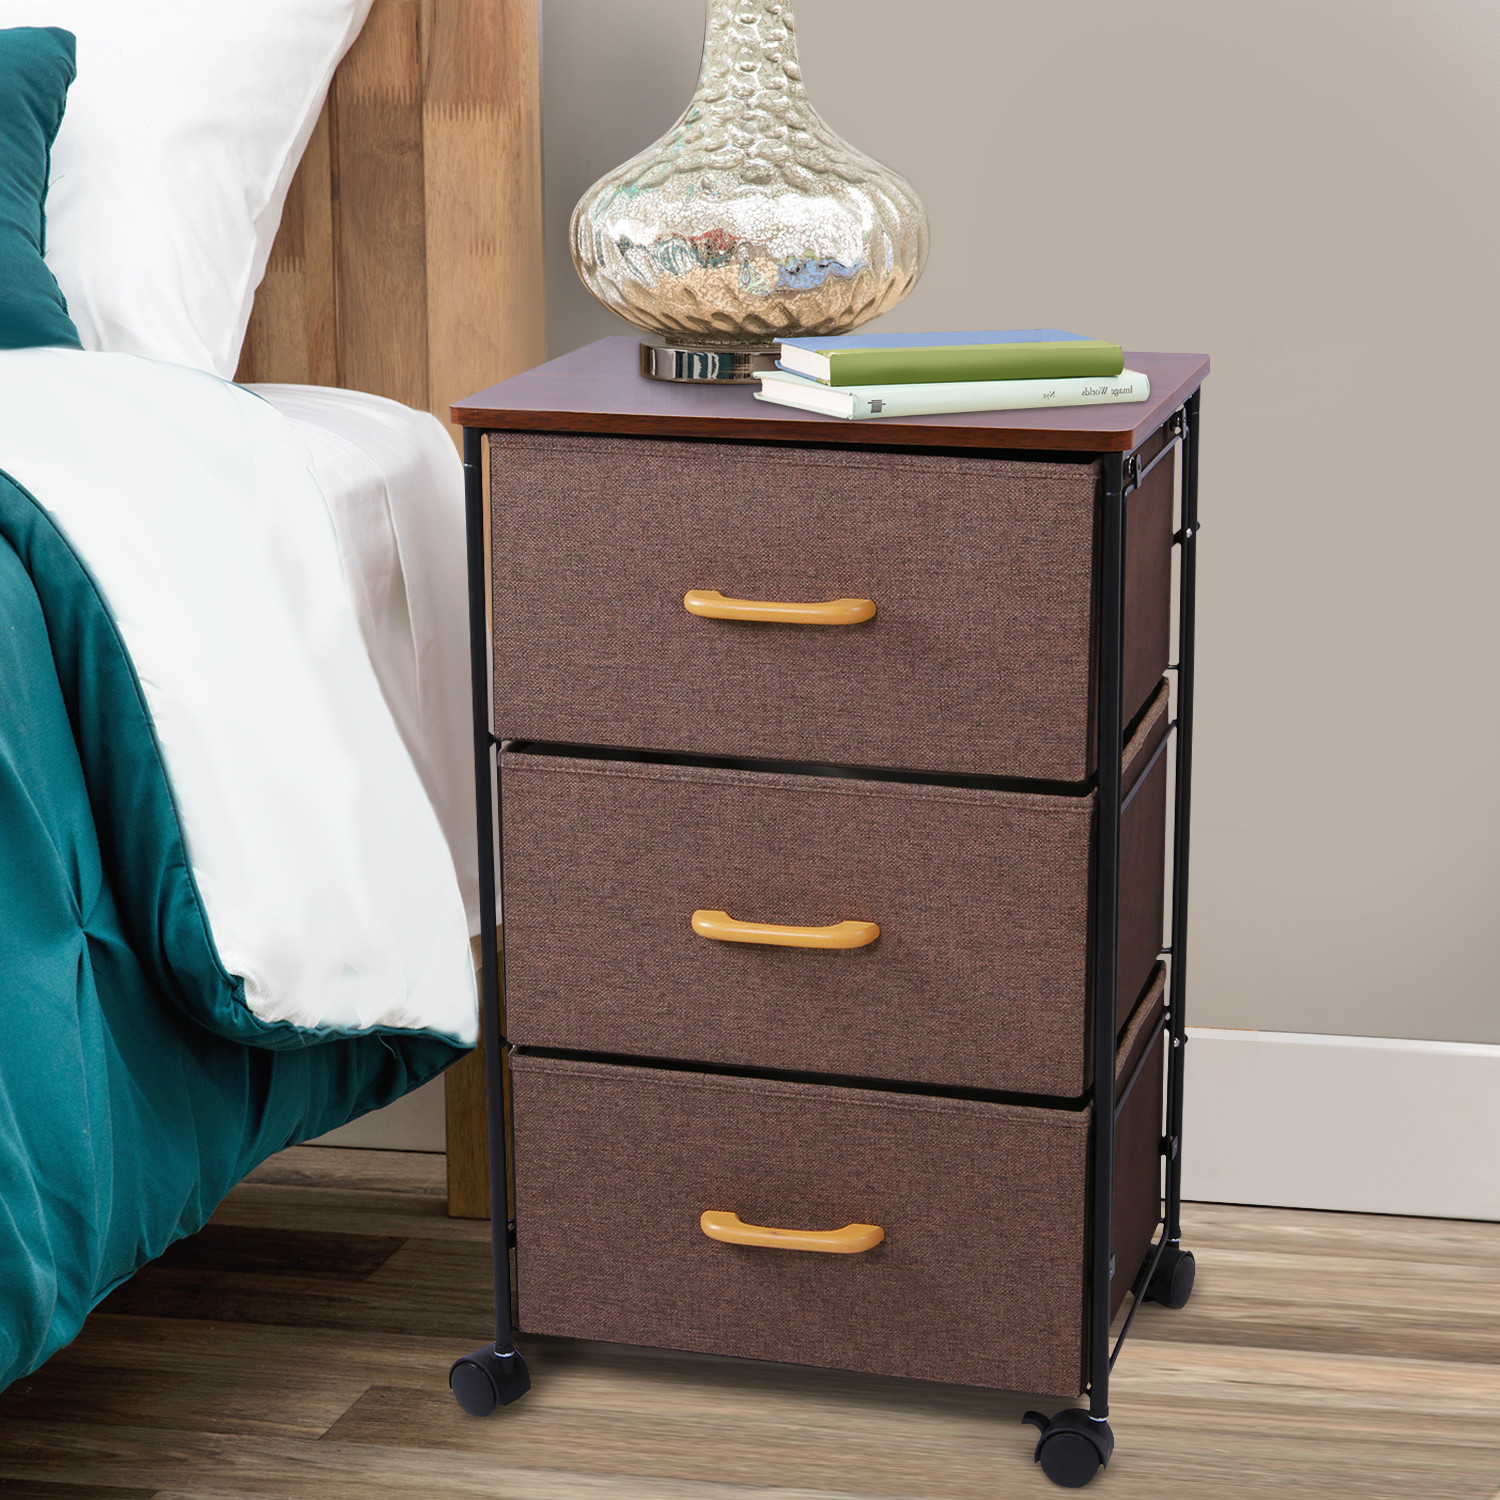 Lifewit Nightstand 3 Drawers Bedside End Table Organizer